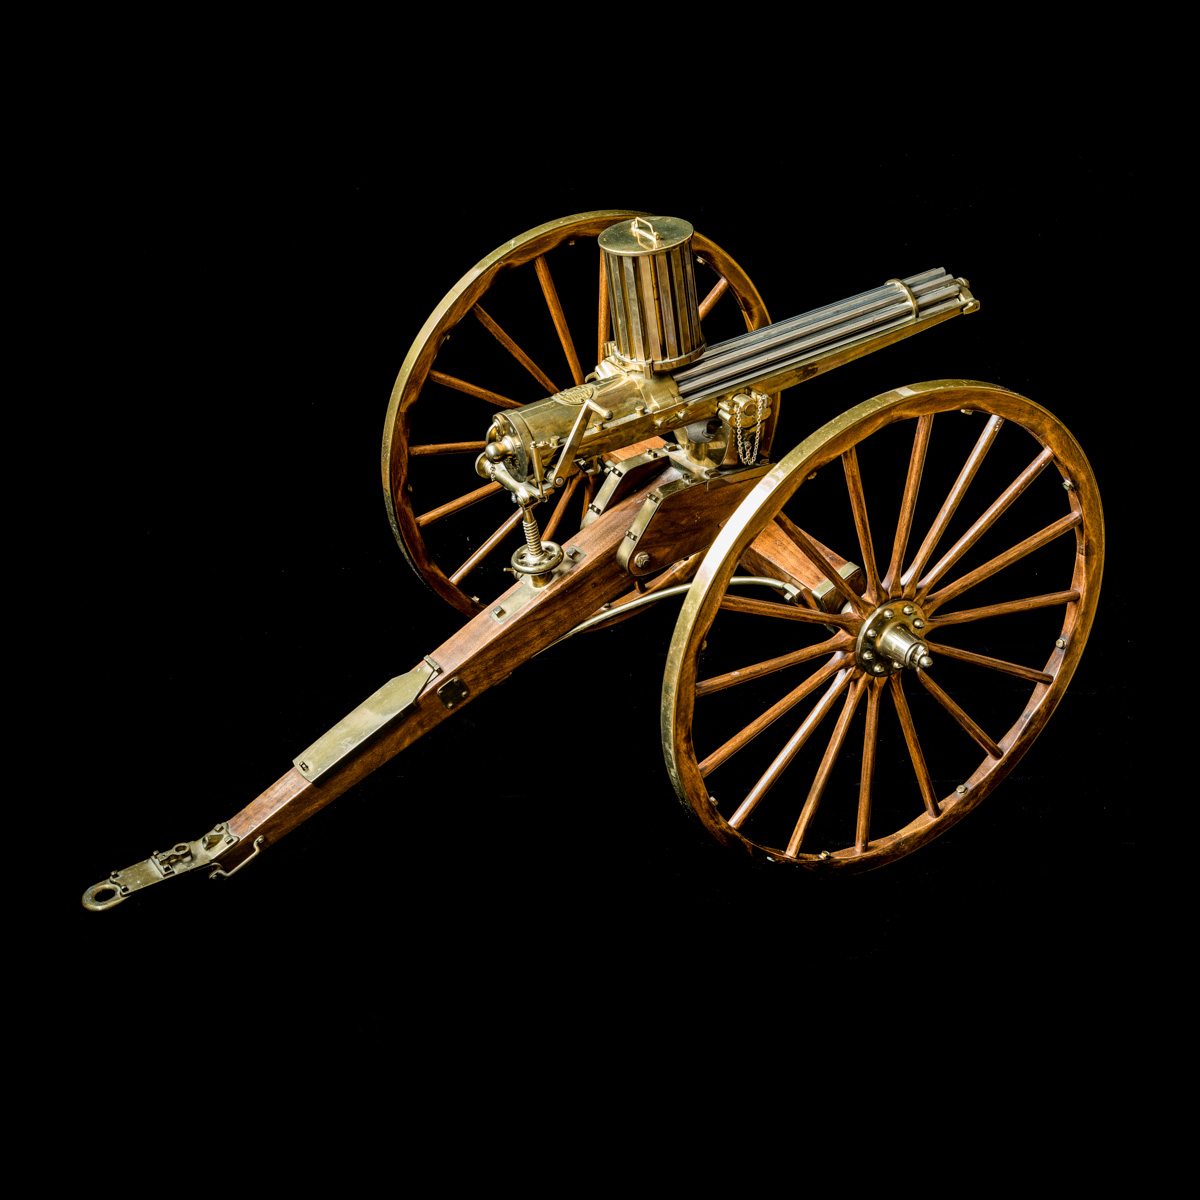 Gatling Gun 1-3rd size model-4